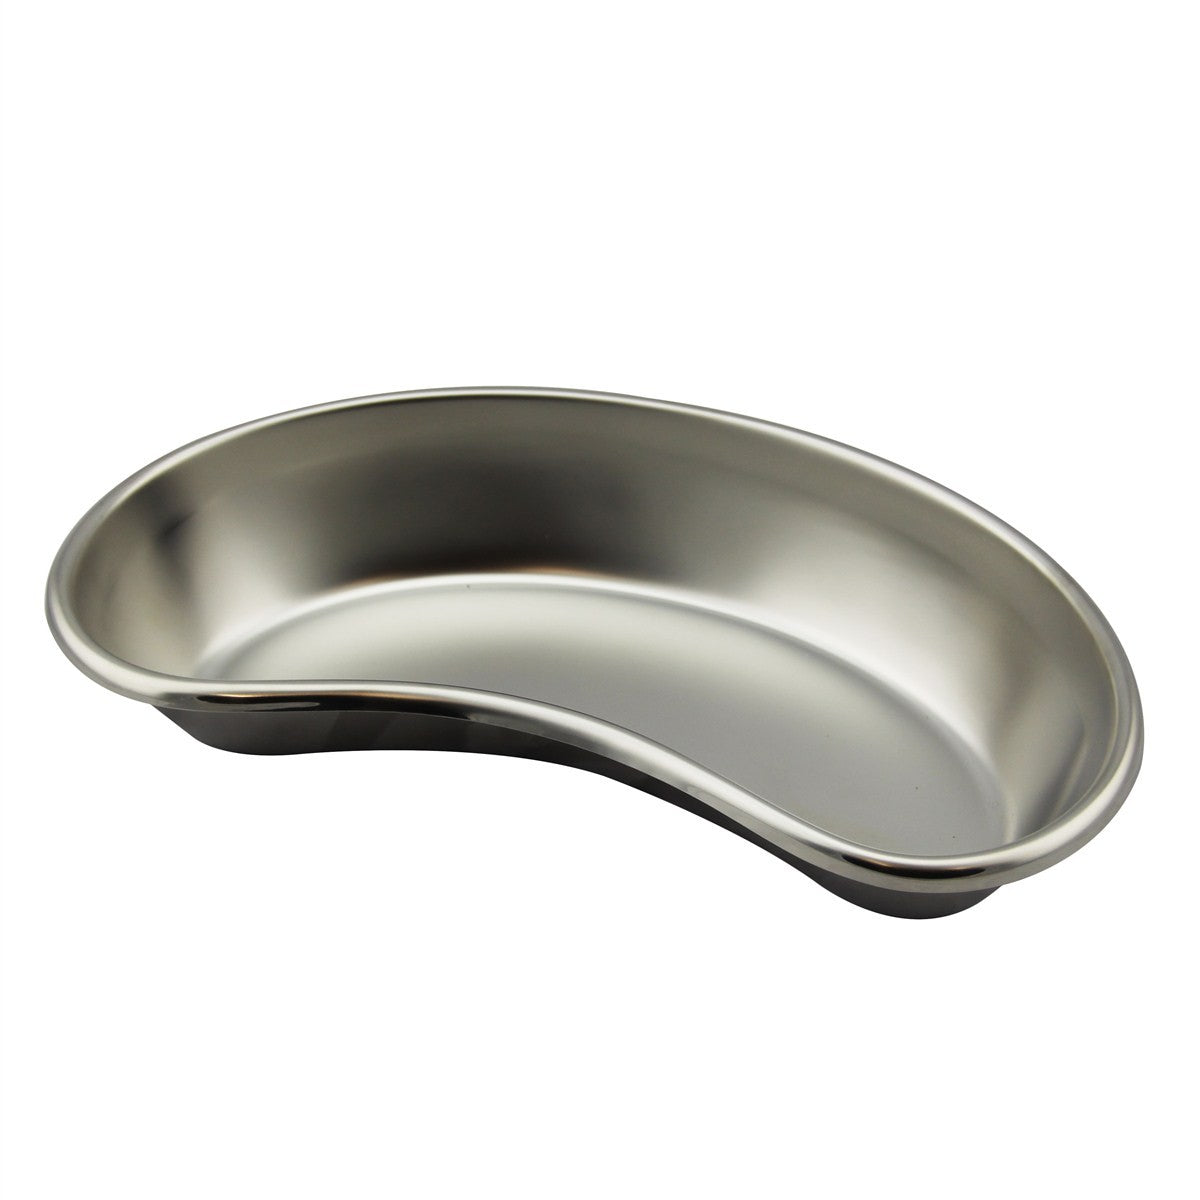 Kidney bowl - stainless steel 20cm - i-Spa